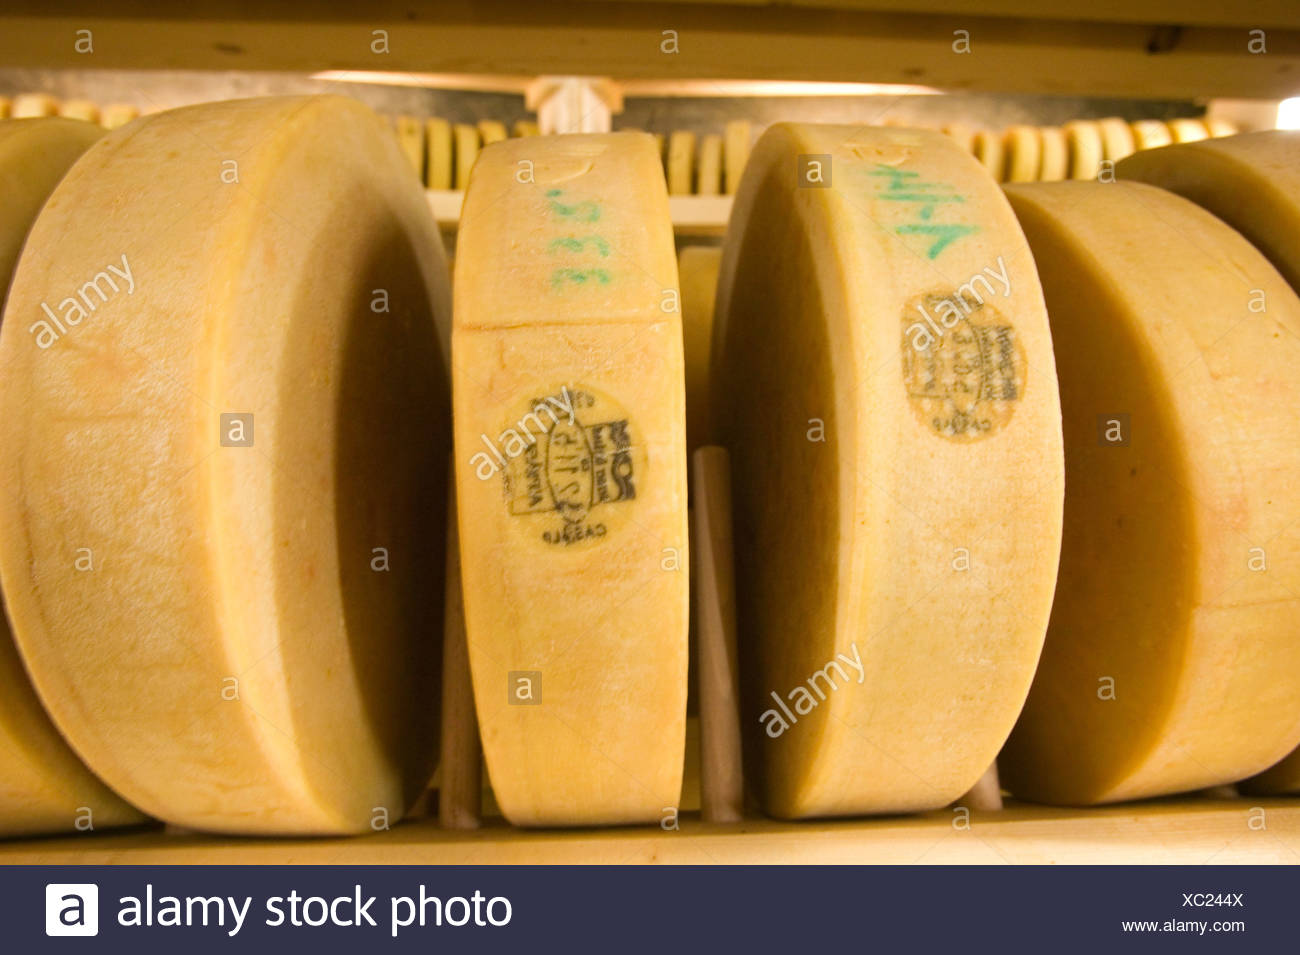 Gstaad, CHE, 23.07.2006: Cheese cathedral of the dairy Gstaad. - Stock Image